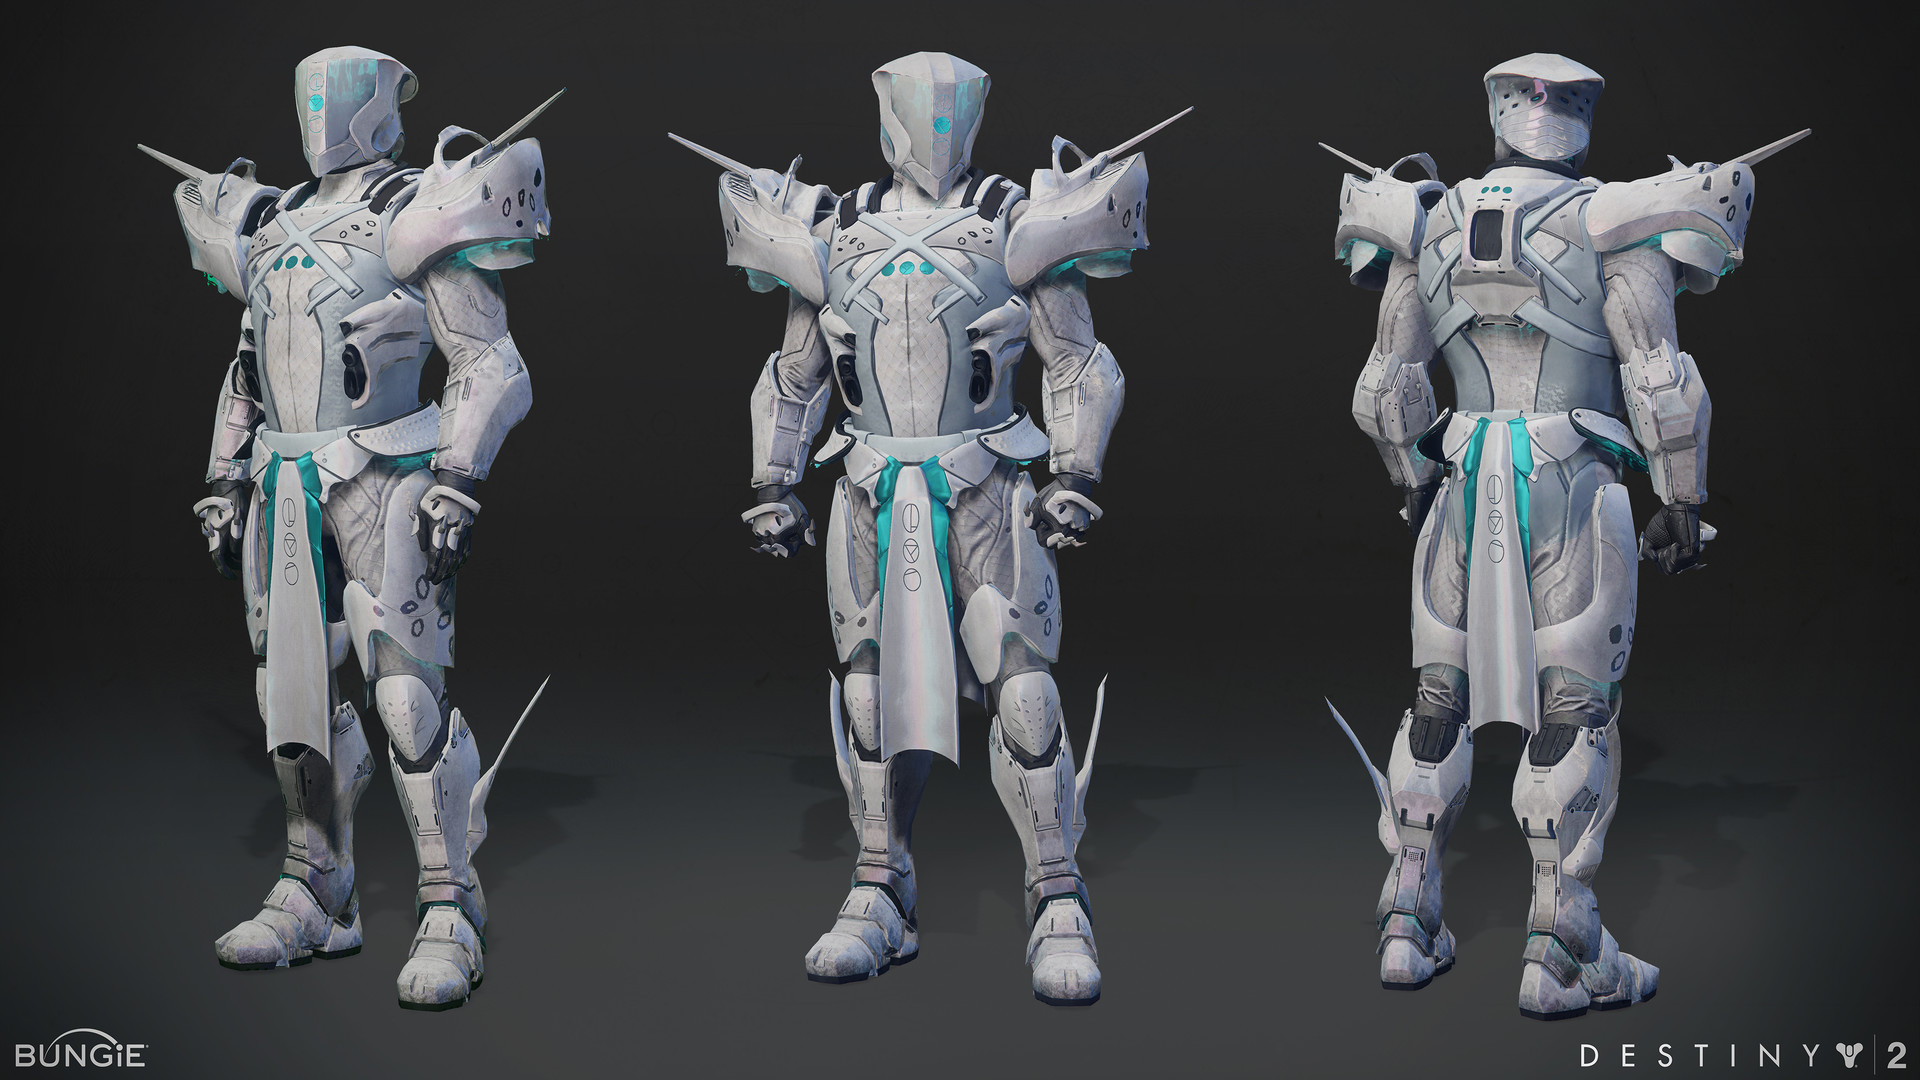 ArtStation - Trials of the nine Titan gear set, Allan Lee